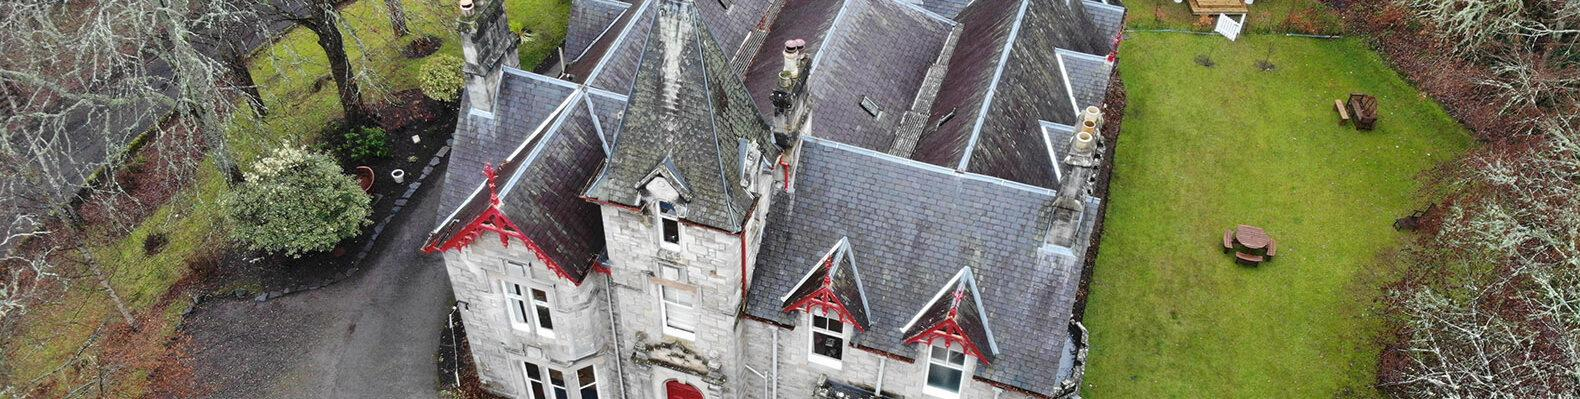 An aerial photo of a 19th century building with grey stone and red accents.